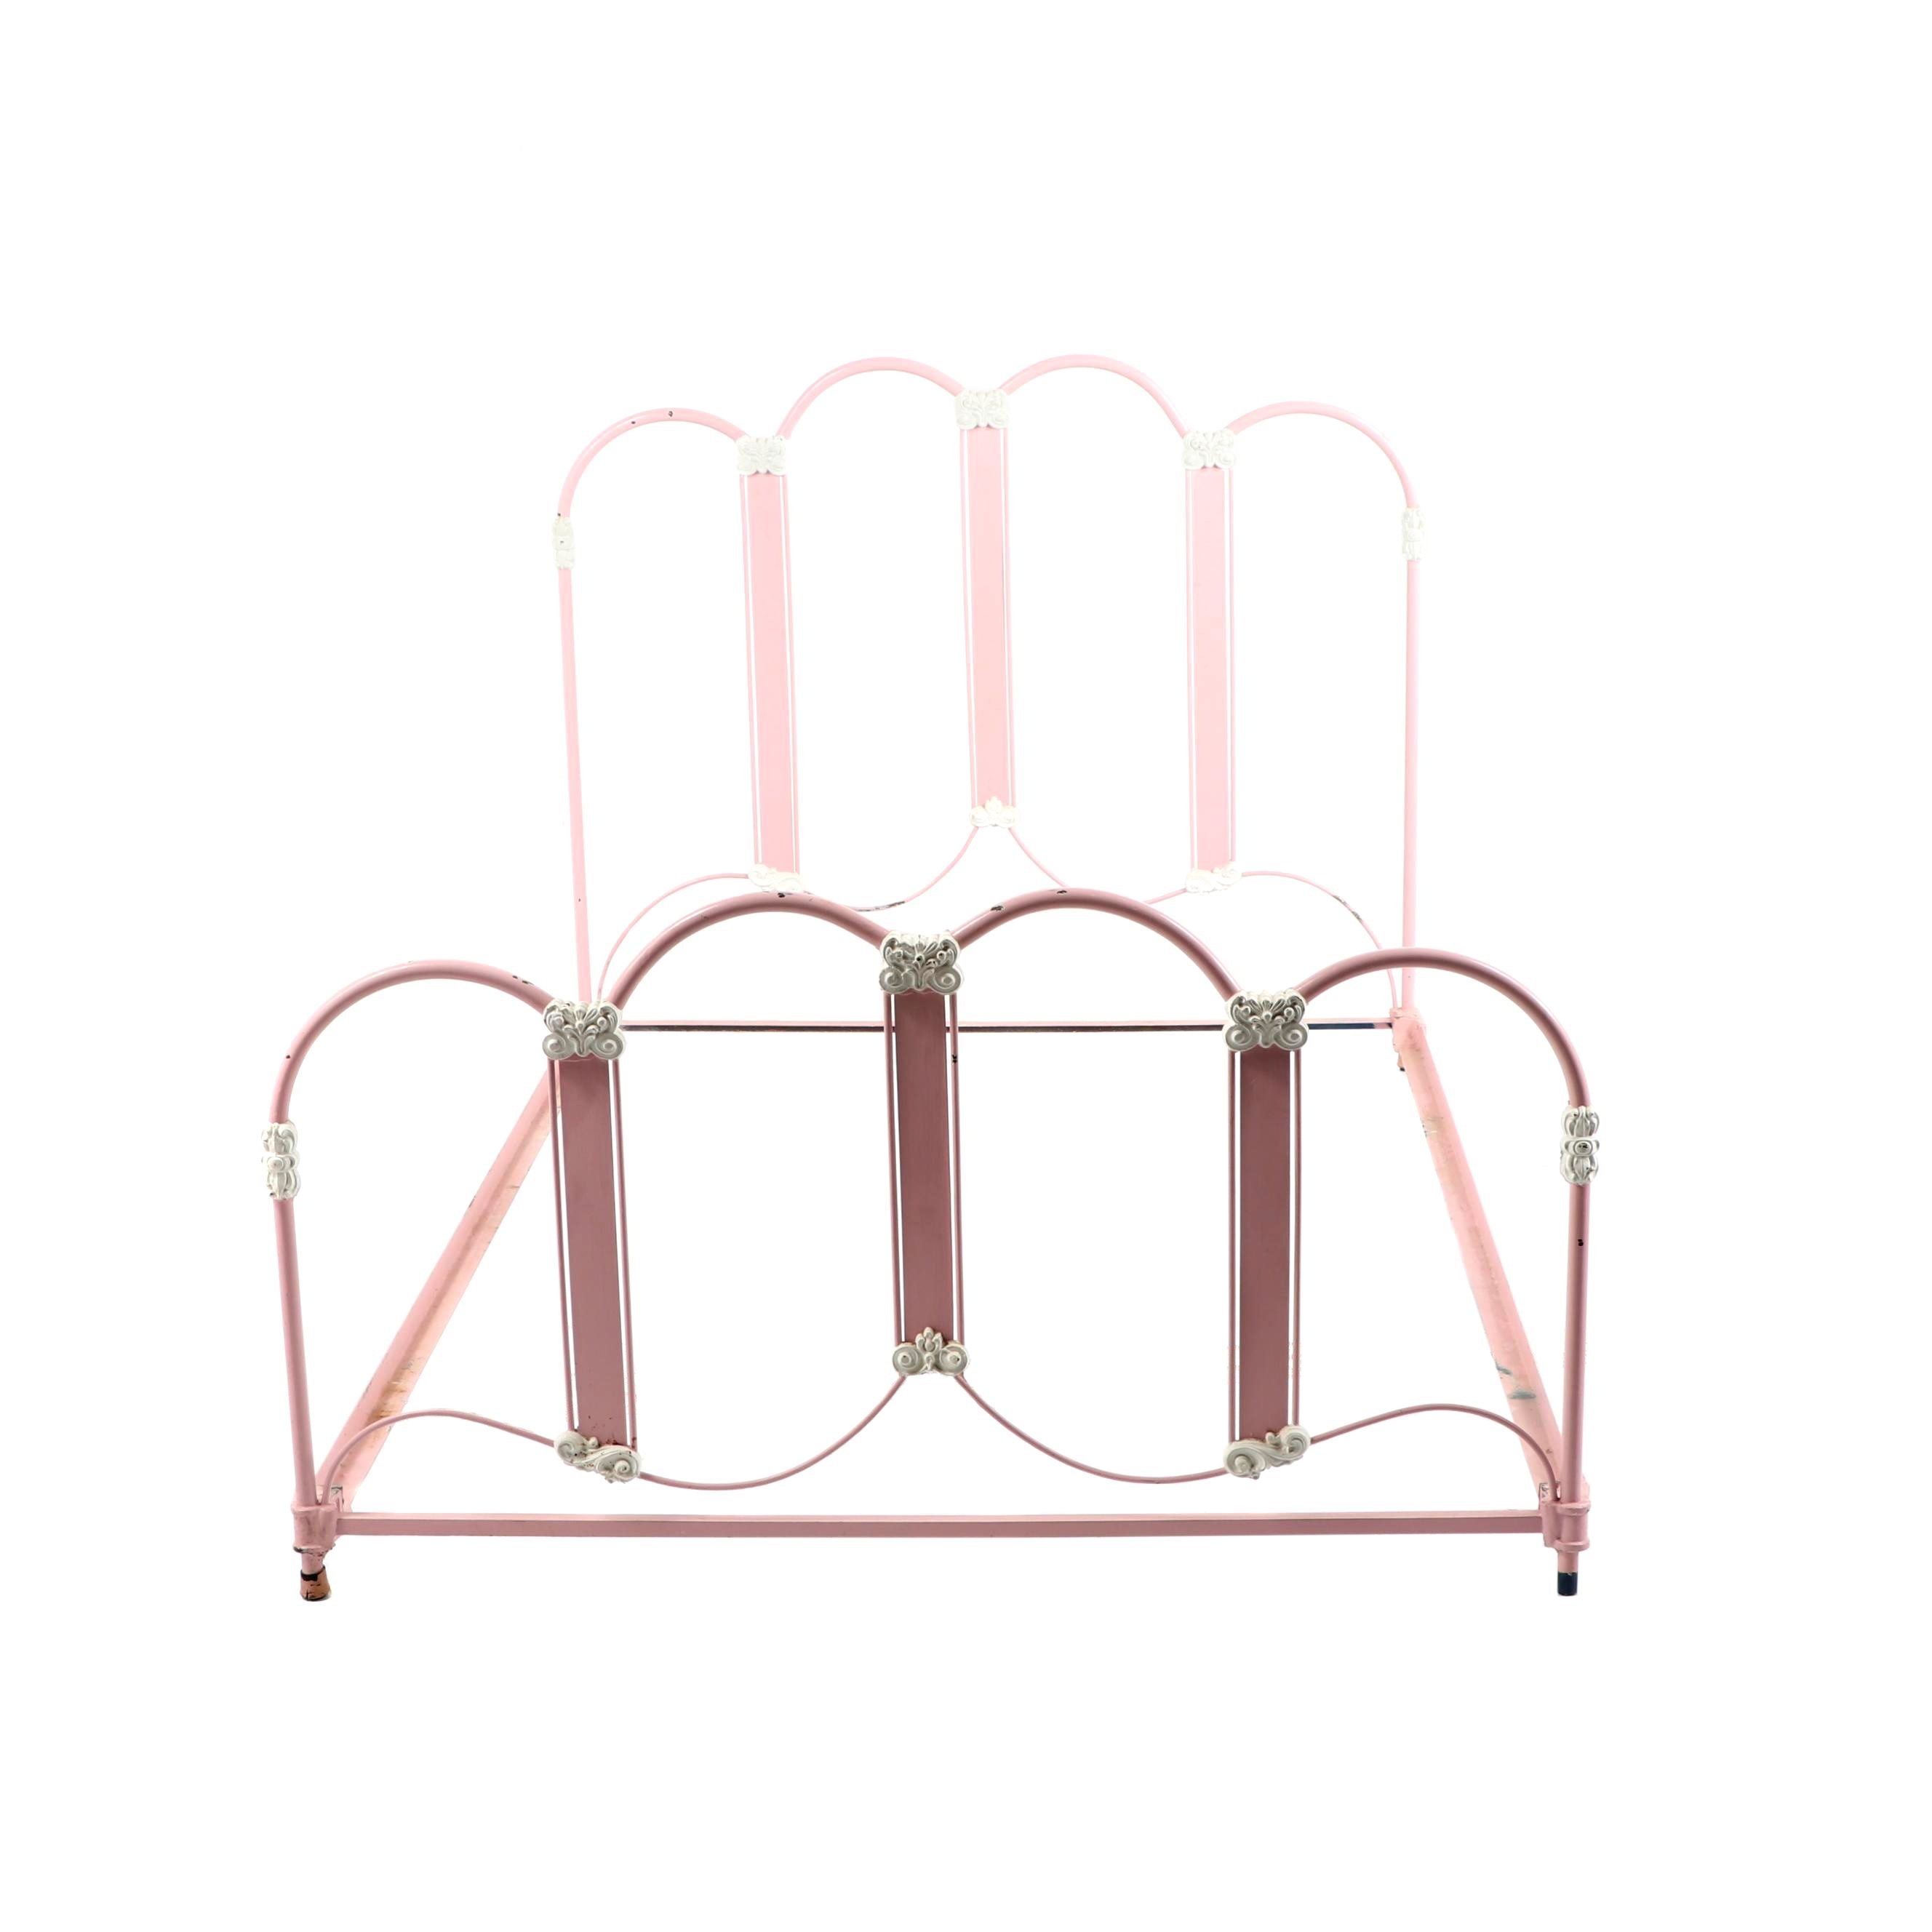 Painted Metal Full Size Bed Frame, Late 19th Century